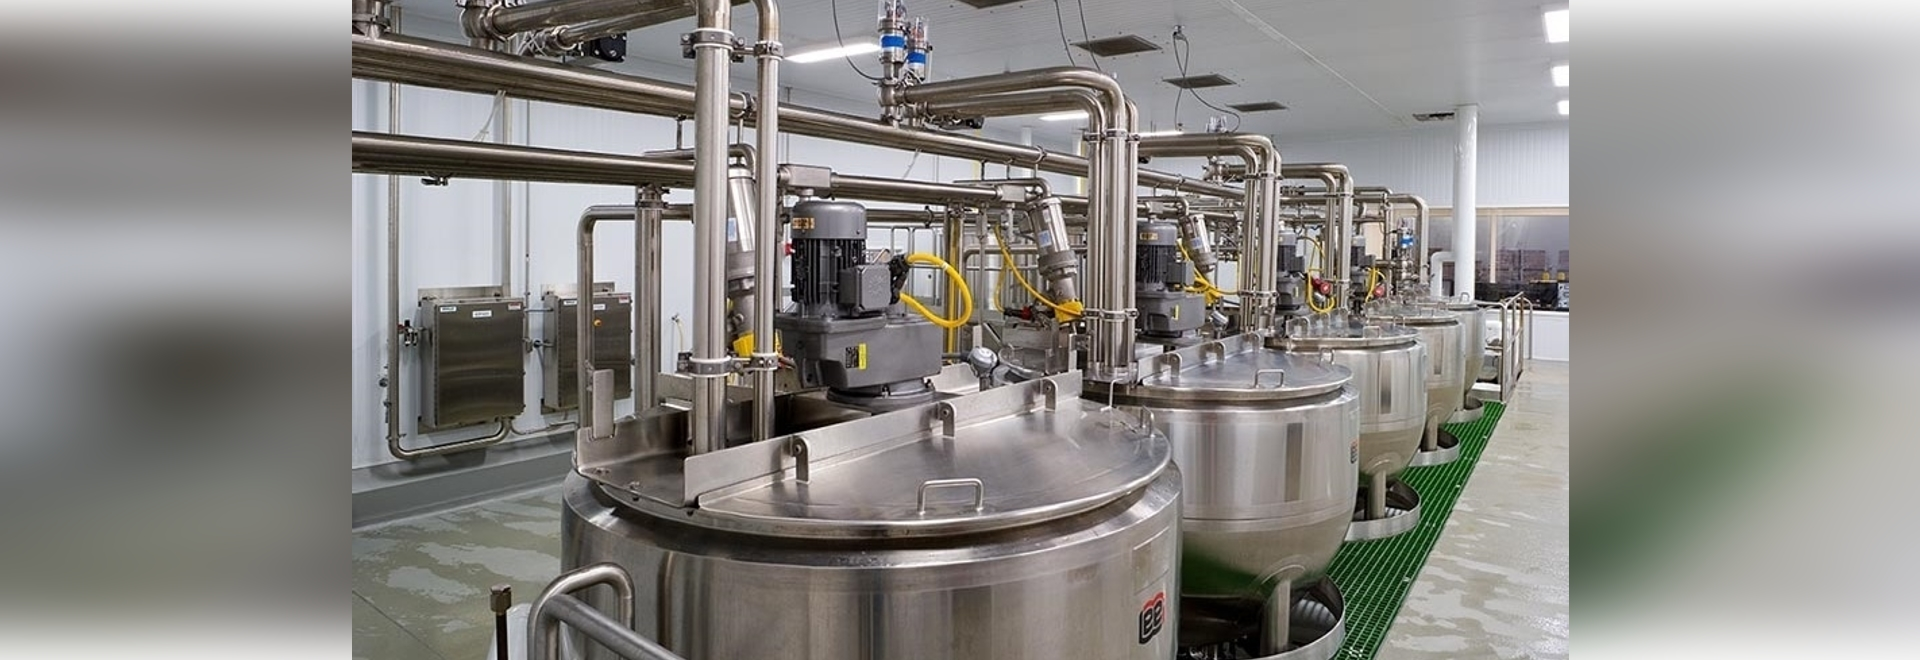 How to Choose the Right Vessel Design for Your Food Processing Operation